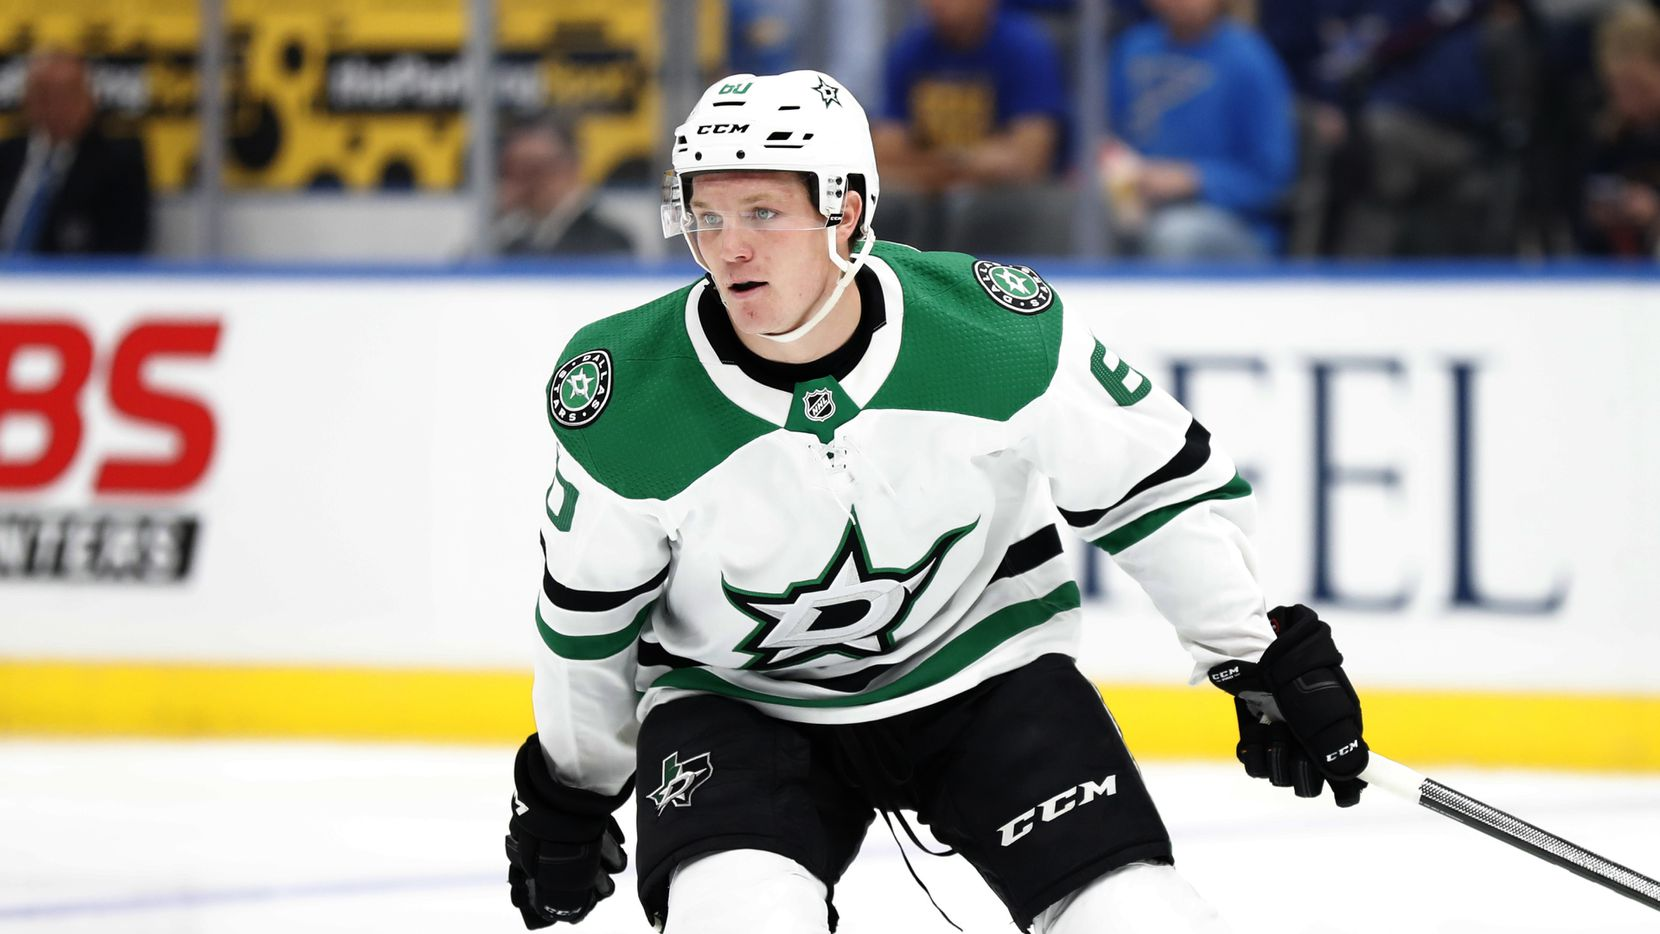 Dallas Stars' Ty Dellandrea skates during the first period of an NHL preseason hockey game against the St. Louis Blues Tuesday, Sept. 24, 2019, in St. Louis.